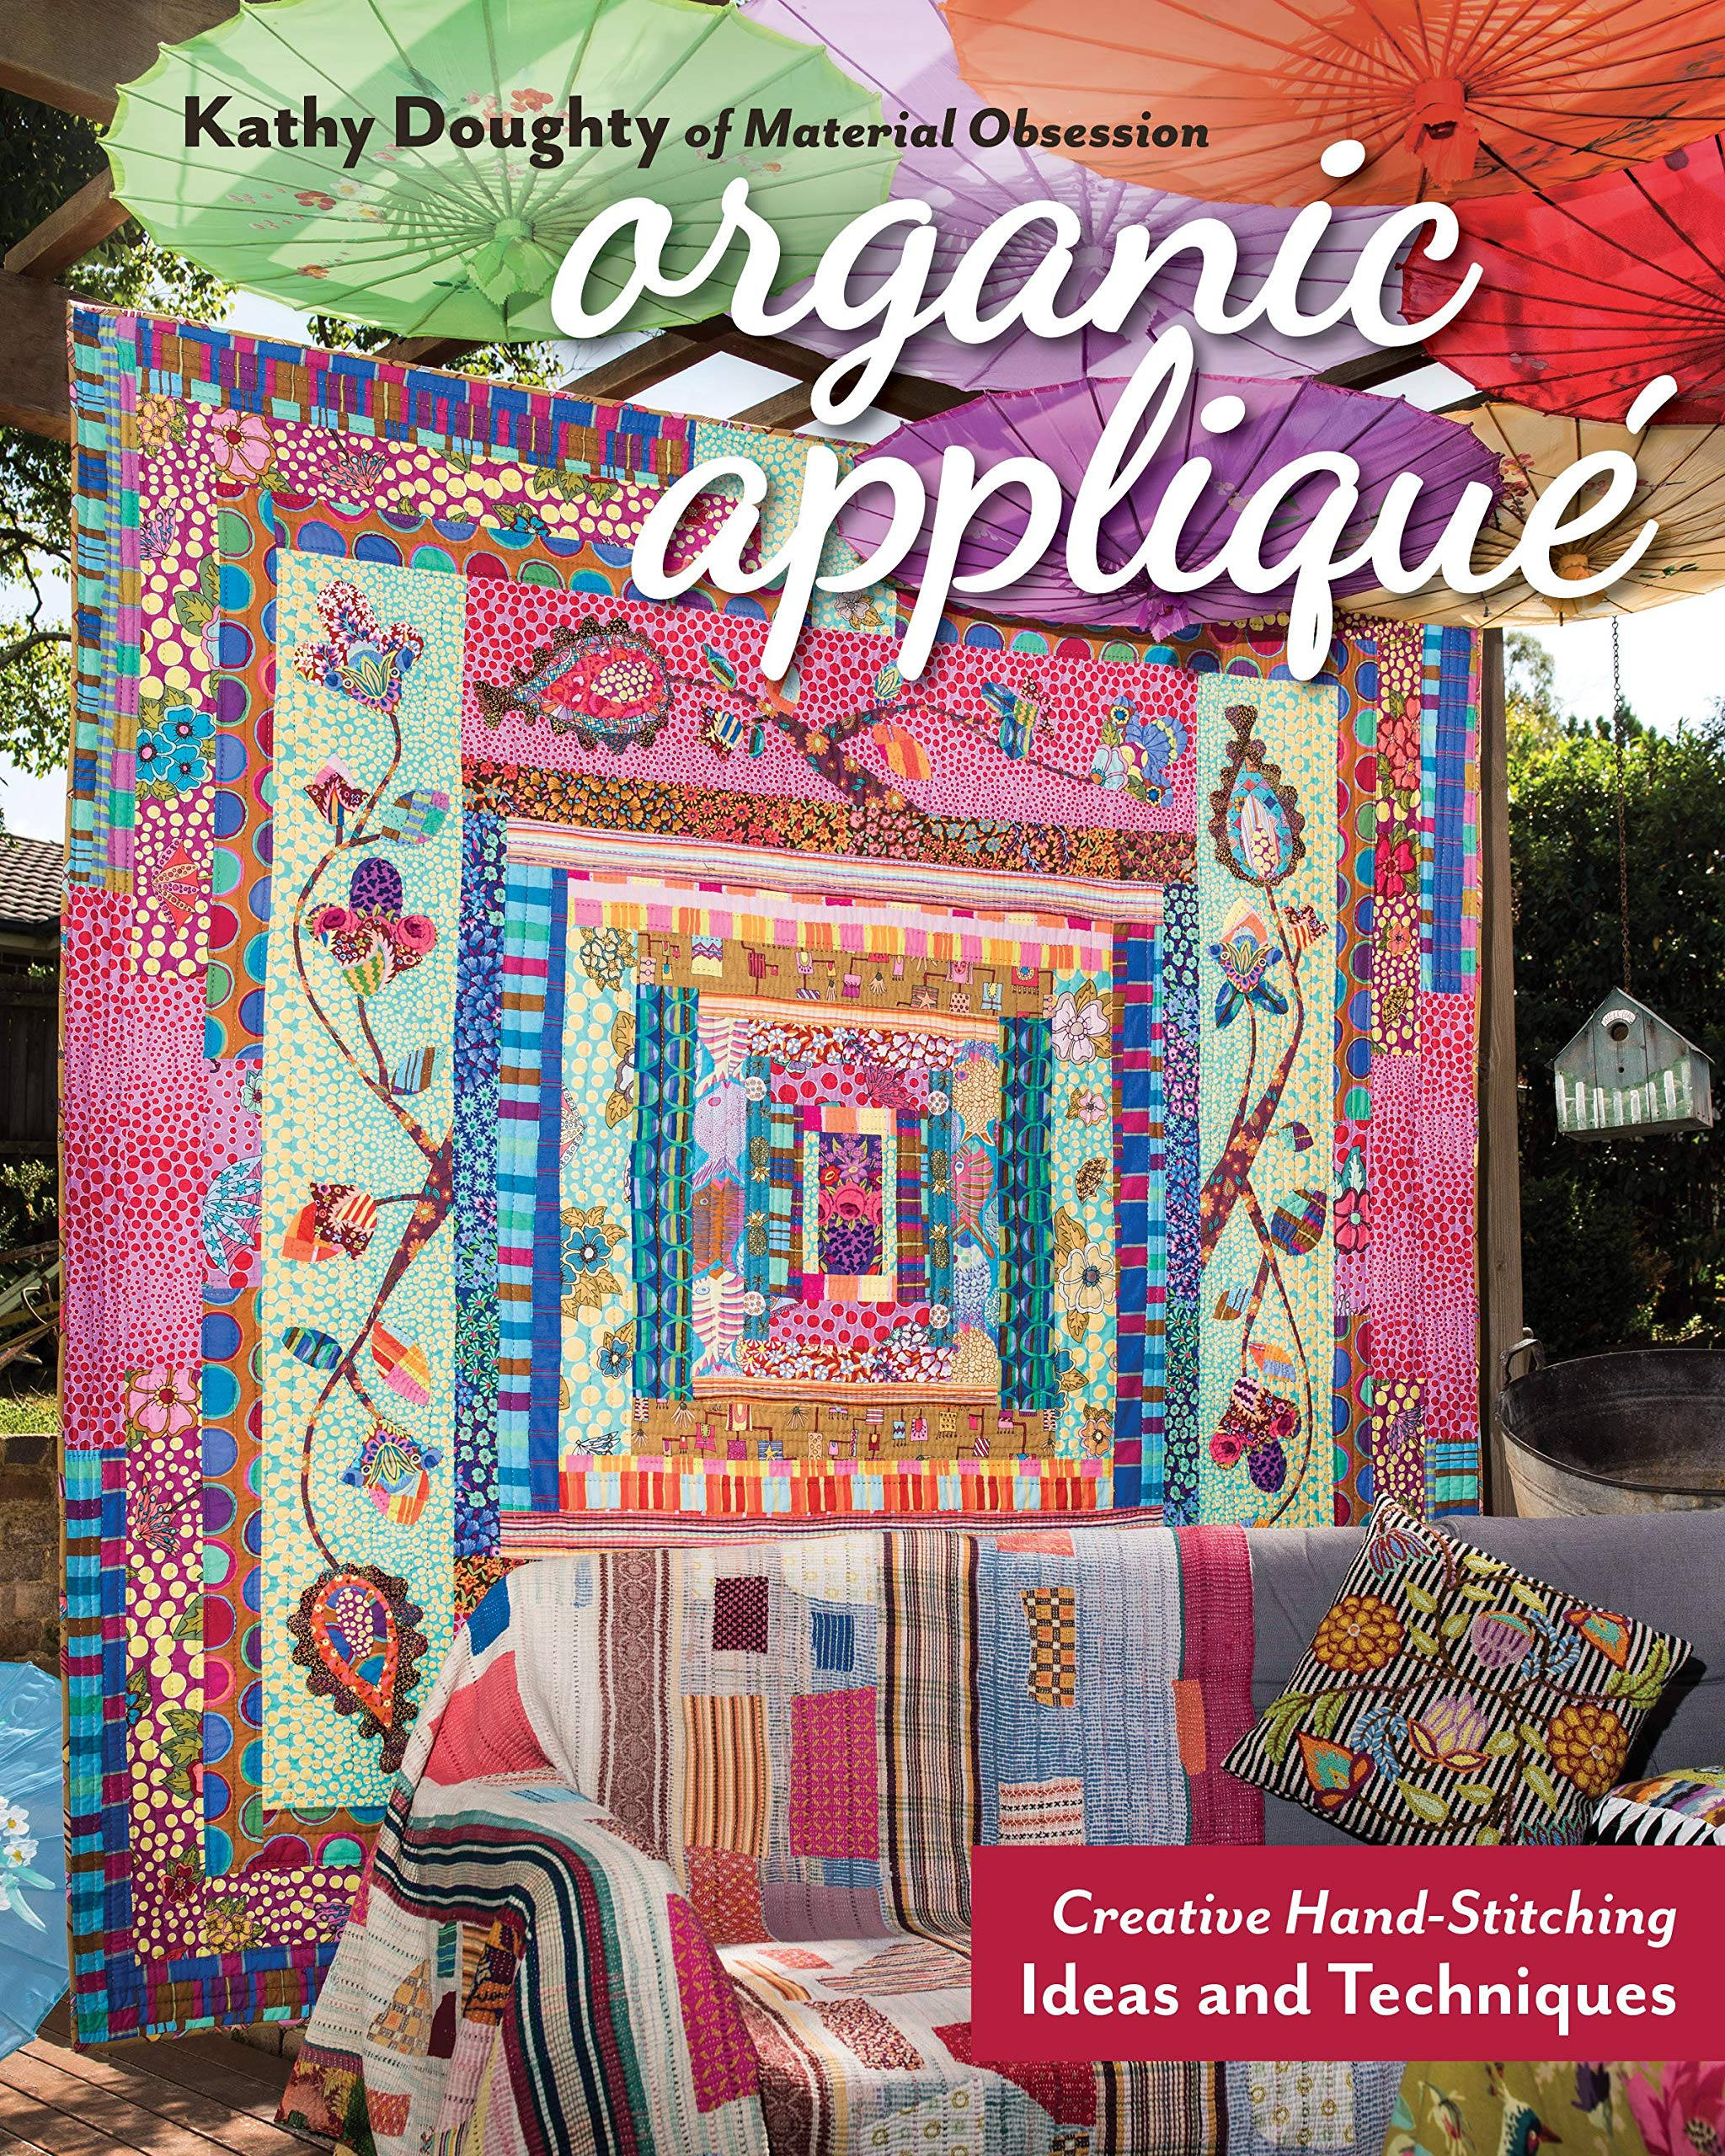 Organic Appliqué: Creative Hand-Stitching Ideas and Techniques